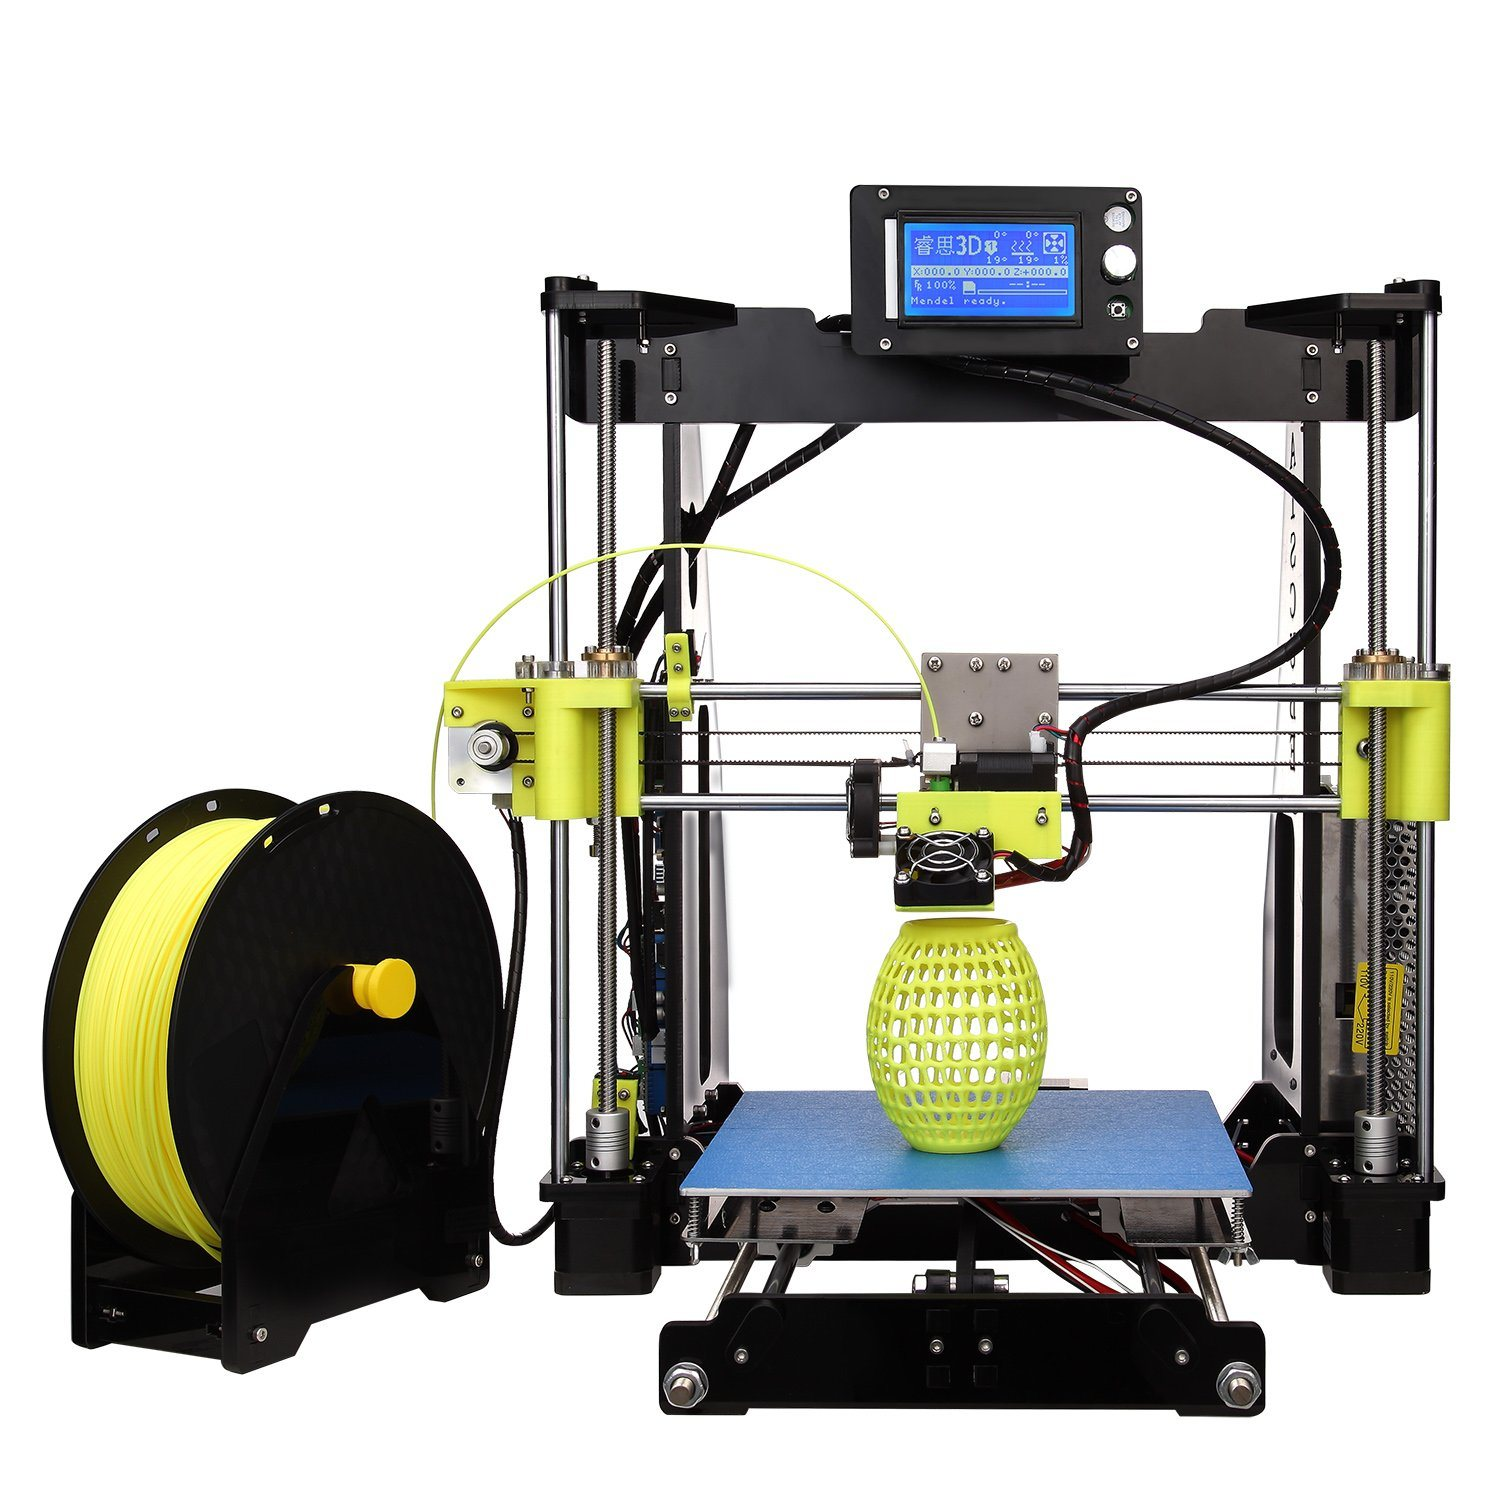 Raiscube R2 High Performance Rapid Prototype DIY 3D Printer Machine